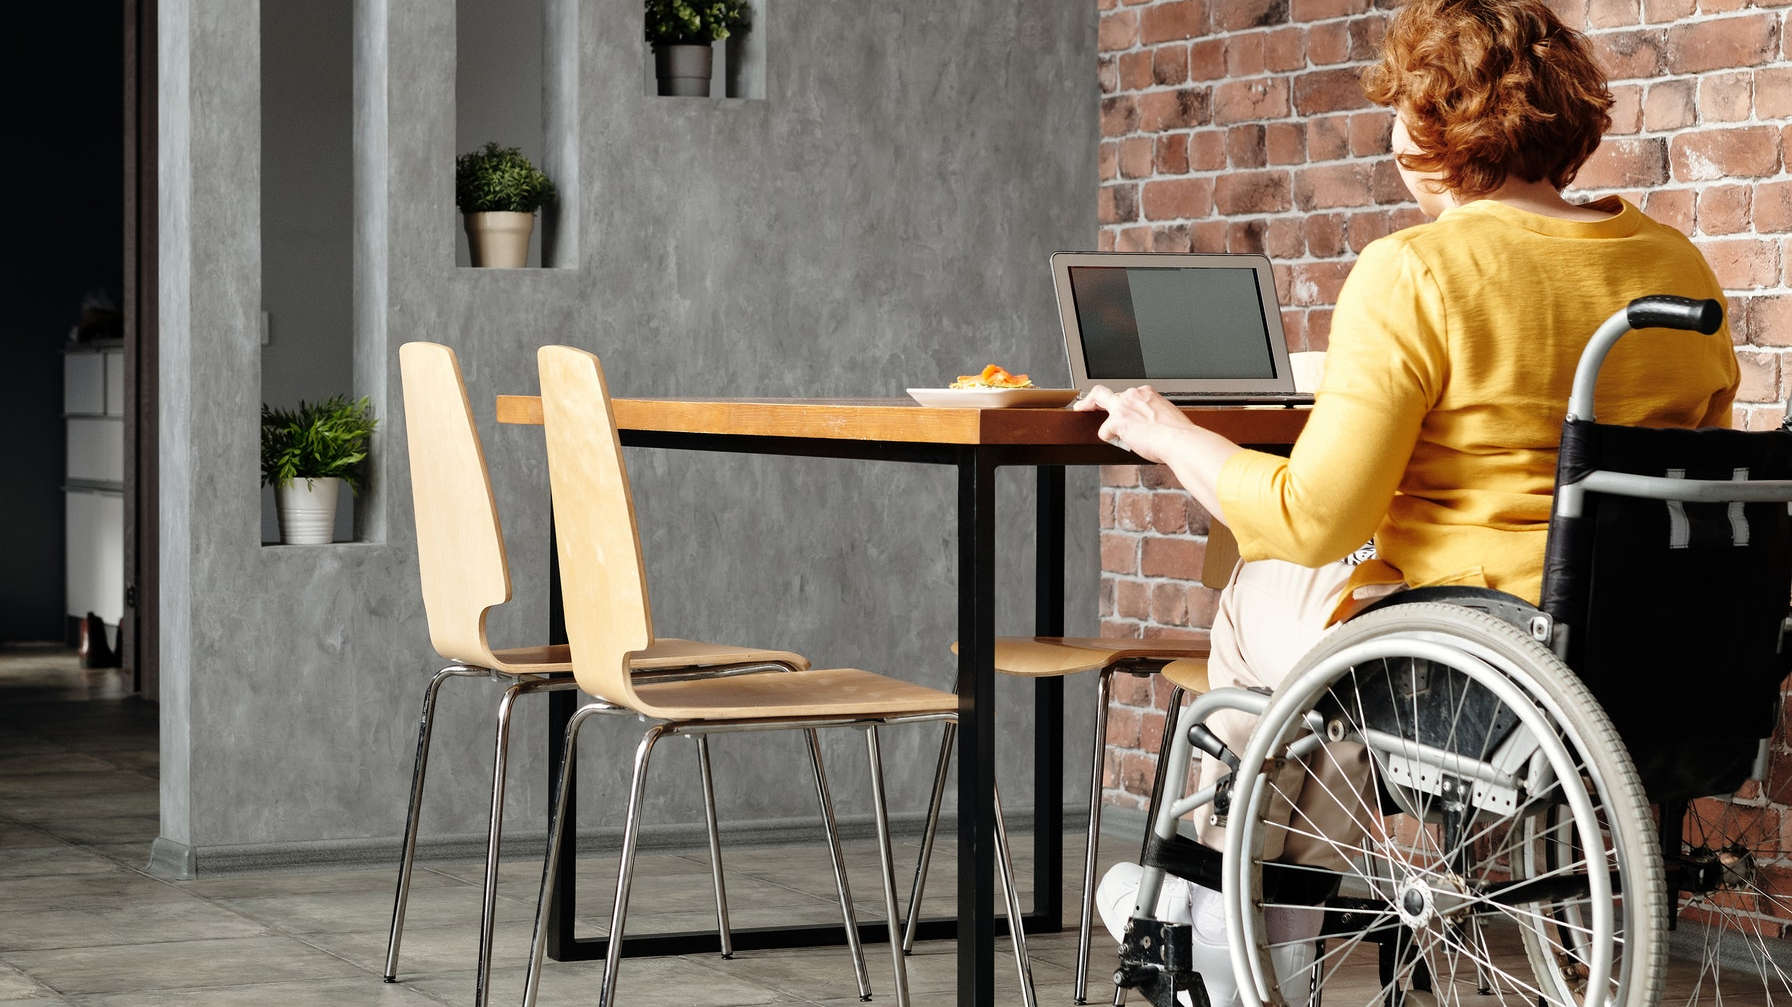 Home automation for elderly and disabled people